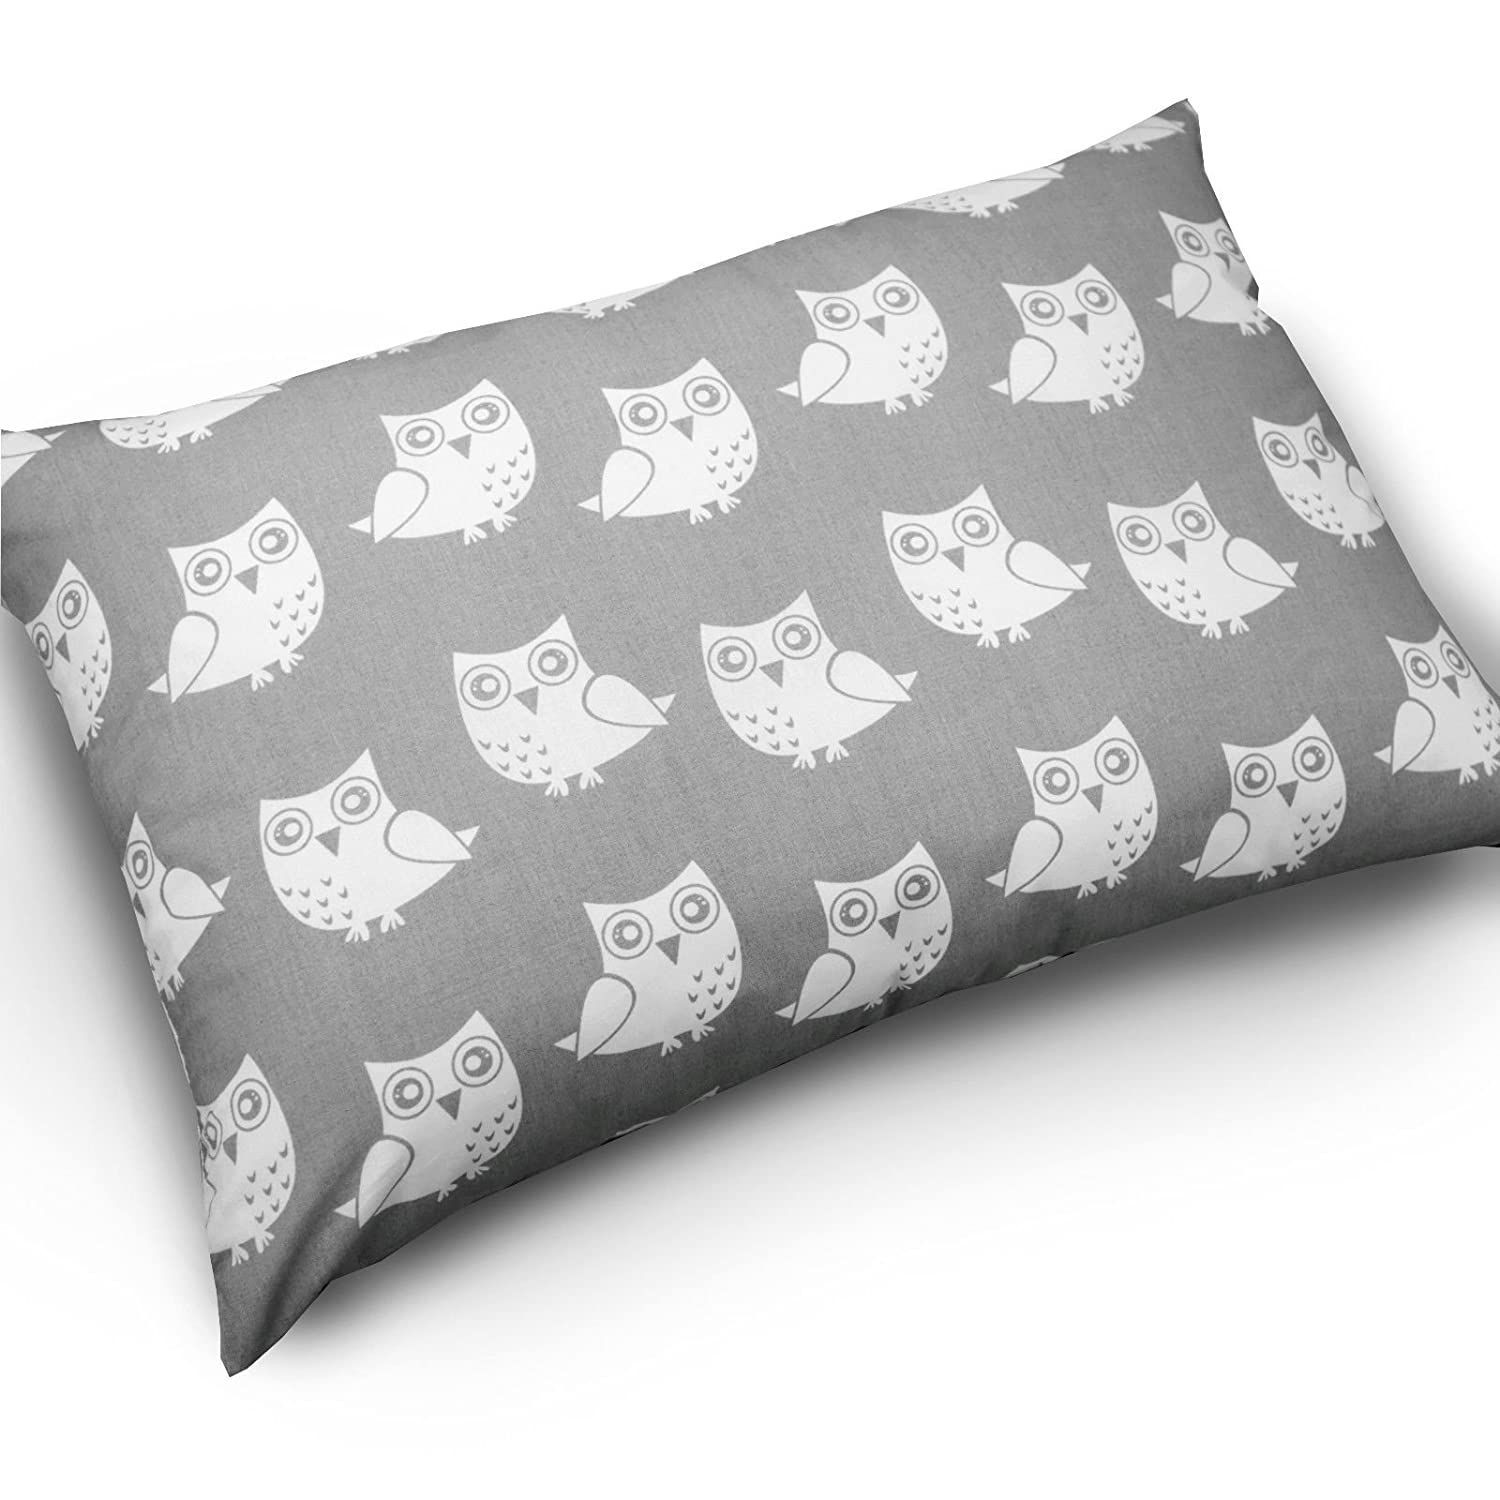 BABY PILLOW CUSHION KIDS 60x40cm BACK SUPPORT DECORATIVE ANTI-ALLERGENIC (Pillow case ONLY, Fox grey) Babymam